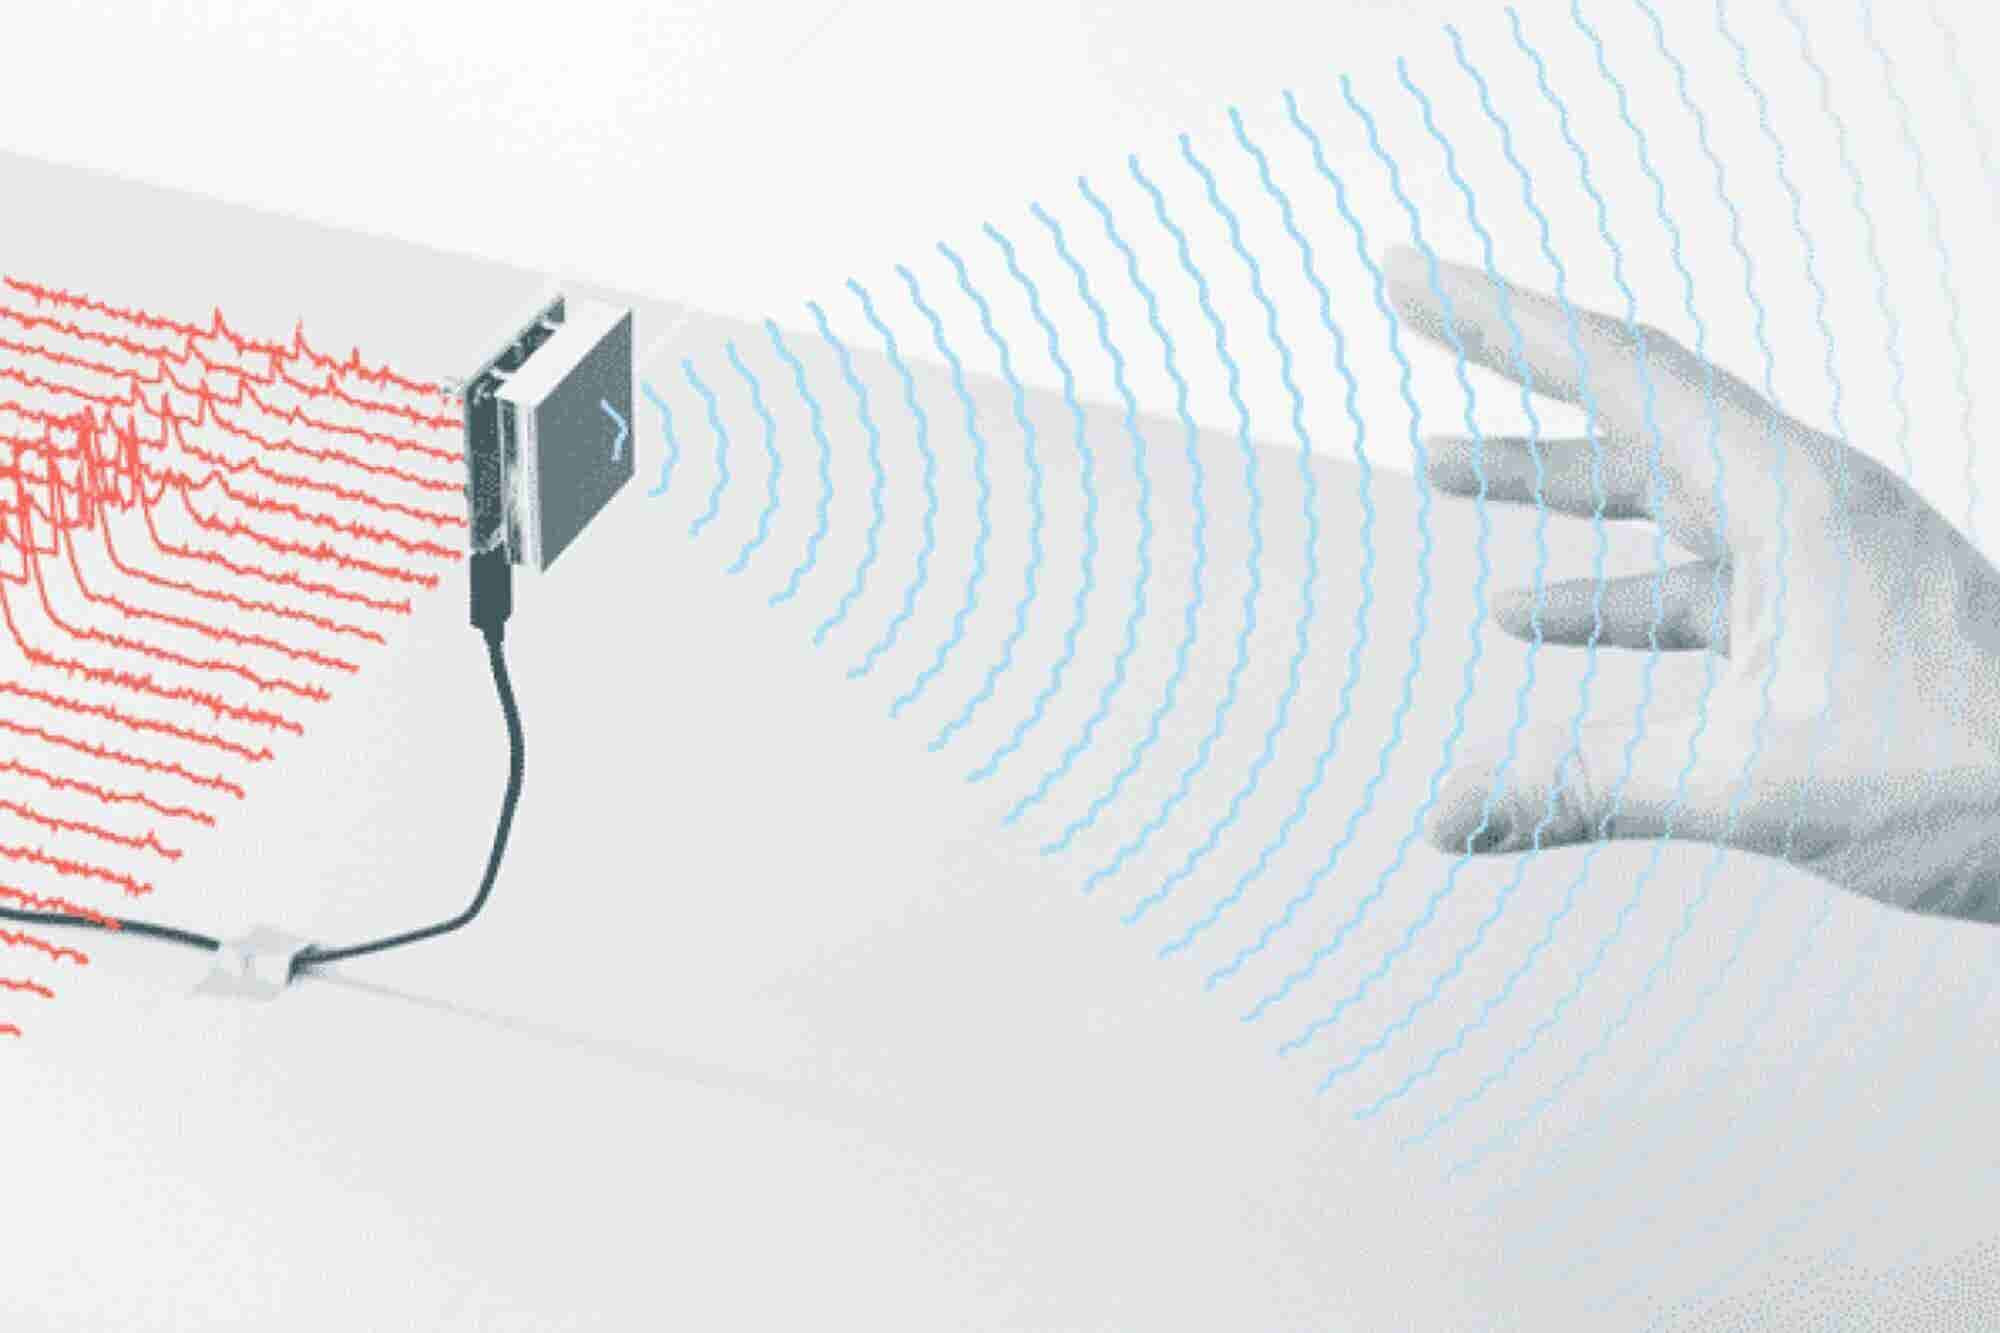 Google Wins FCC Approval to Keep Developing Radar-Based Hand Sensor